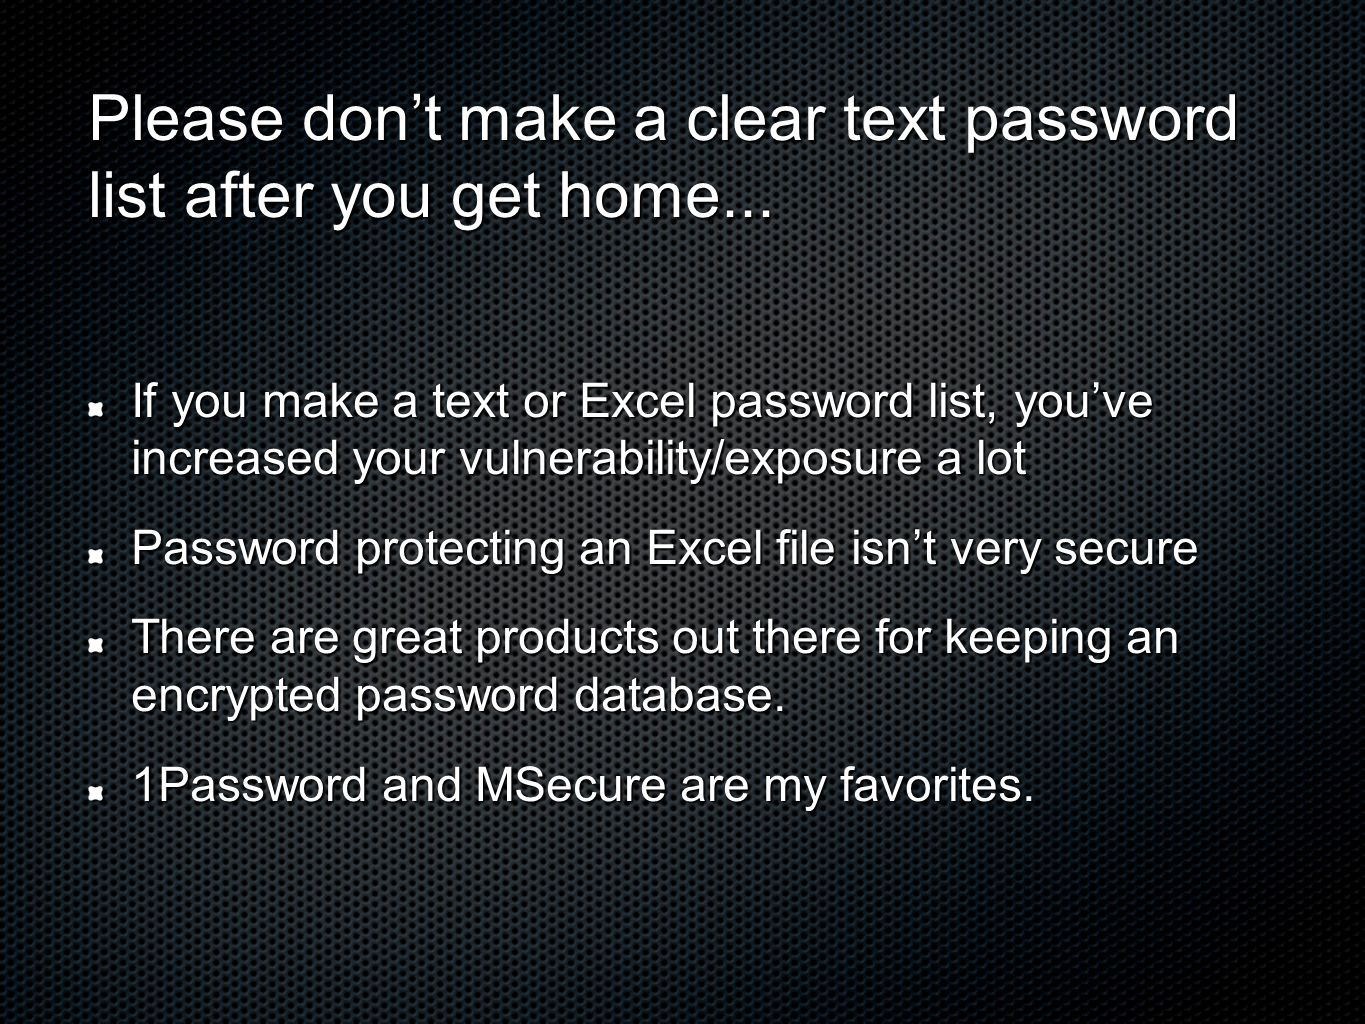 Please don't make a clear text password list after you get home...